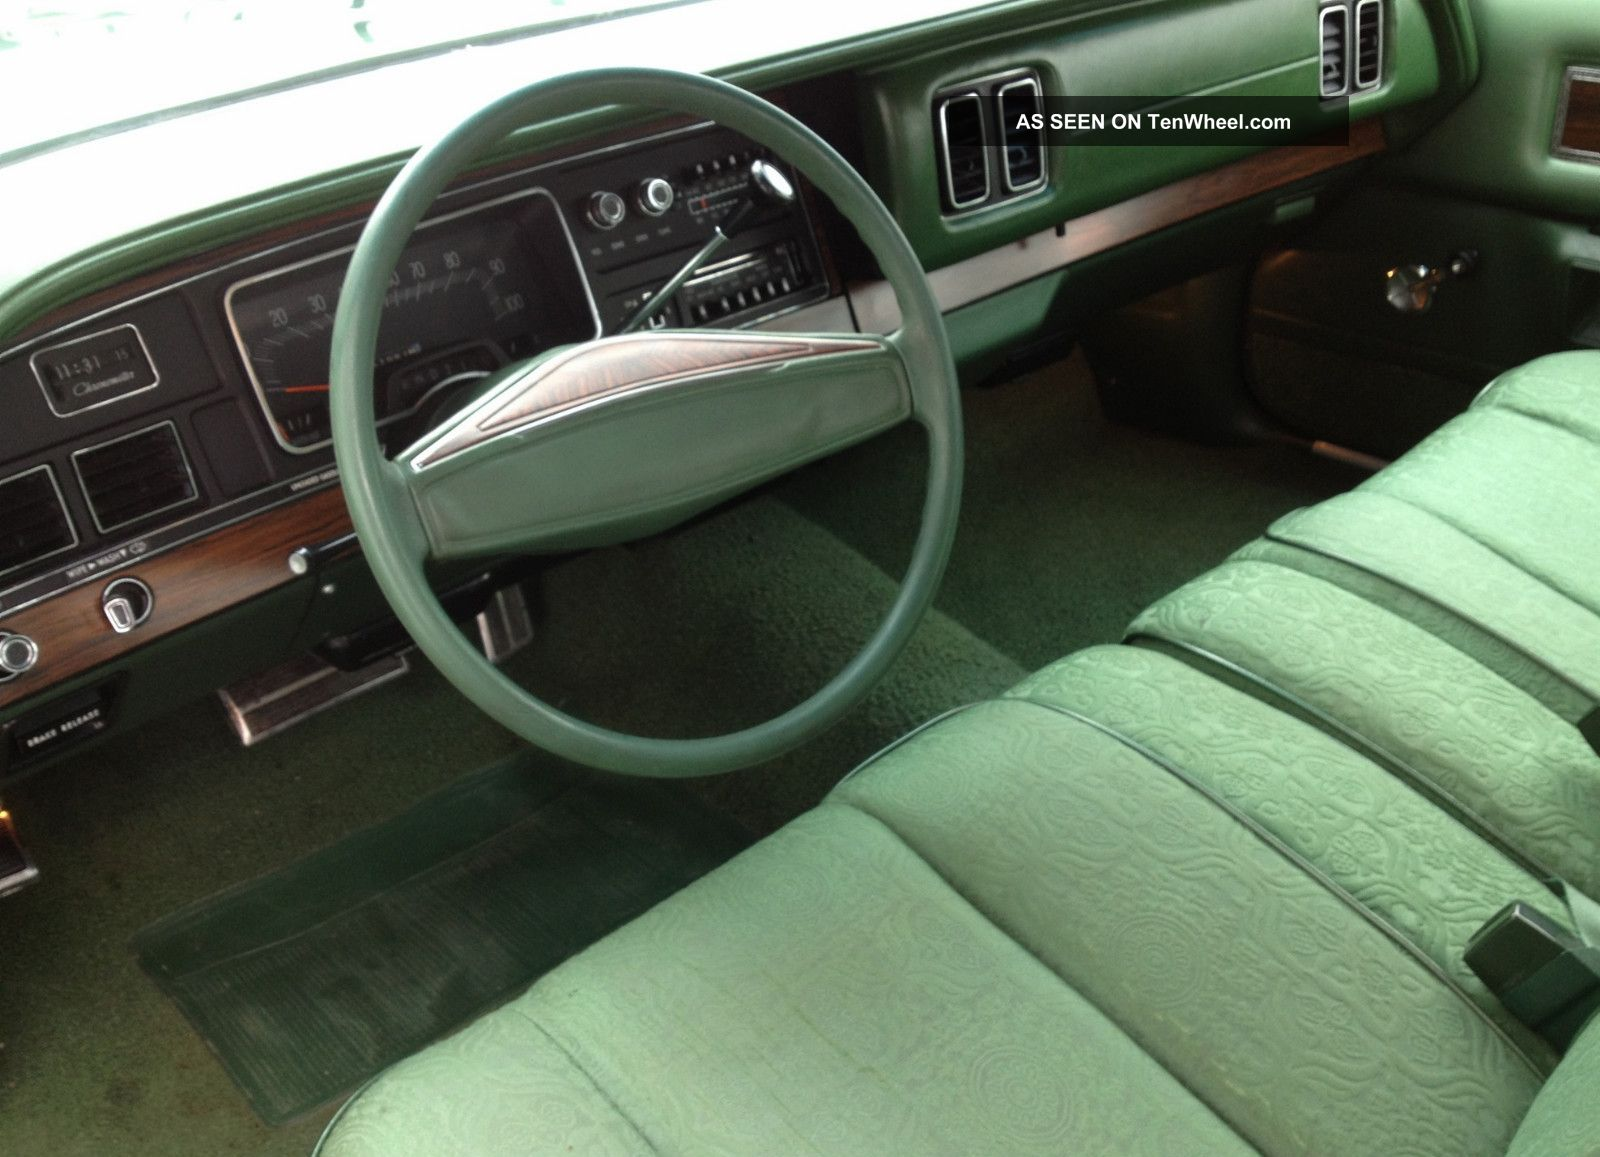 231955281052 moreover 27626 1976 dodge royal monaco brougham together with Dodge Monaco 2 Door Hardtop 1973 Pictures 132223 additionally Harley Davidson Boom Audio Wiring Diagram Also Rear also Vehicle 69553 Plymouth Fury 1977. on 1976 dodge royal monaco 4 door